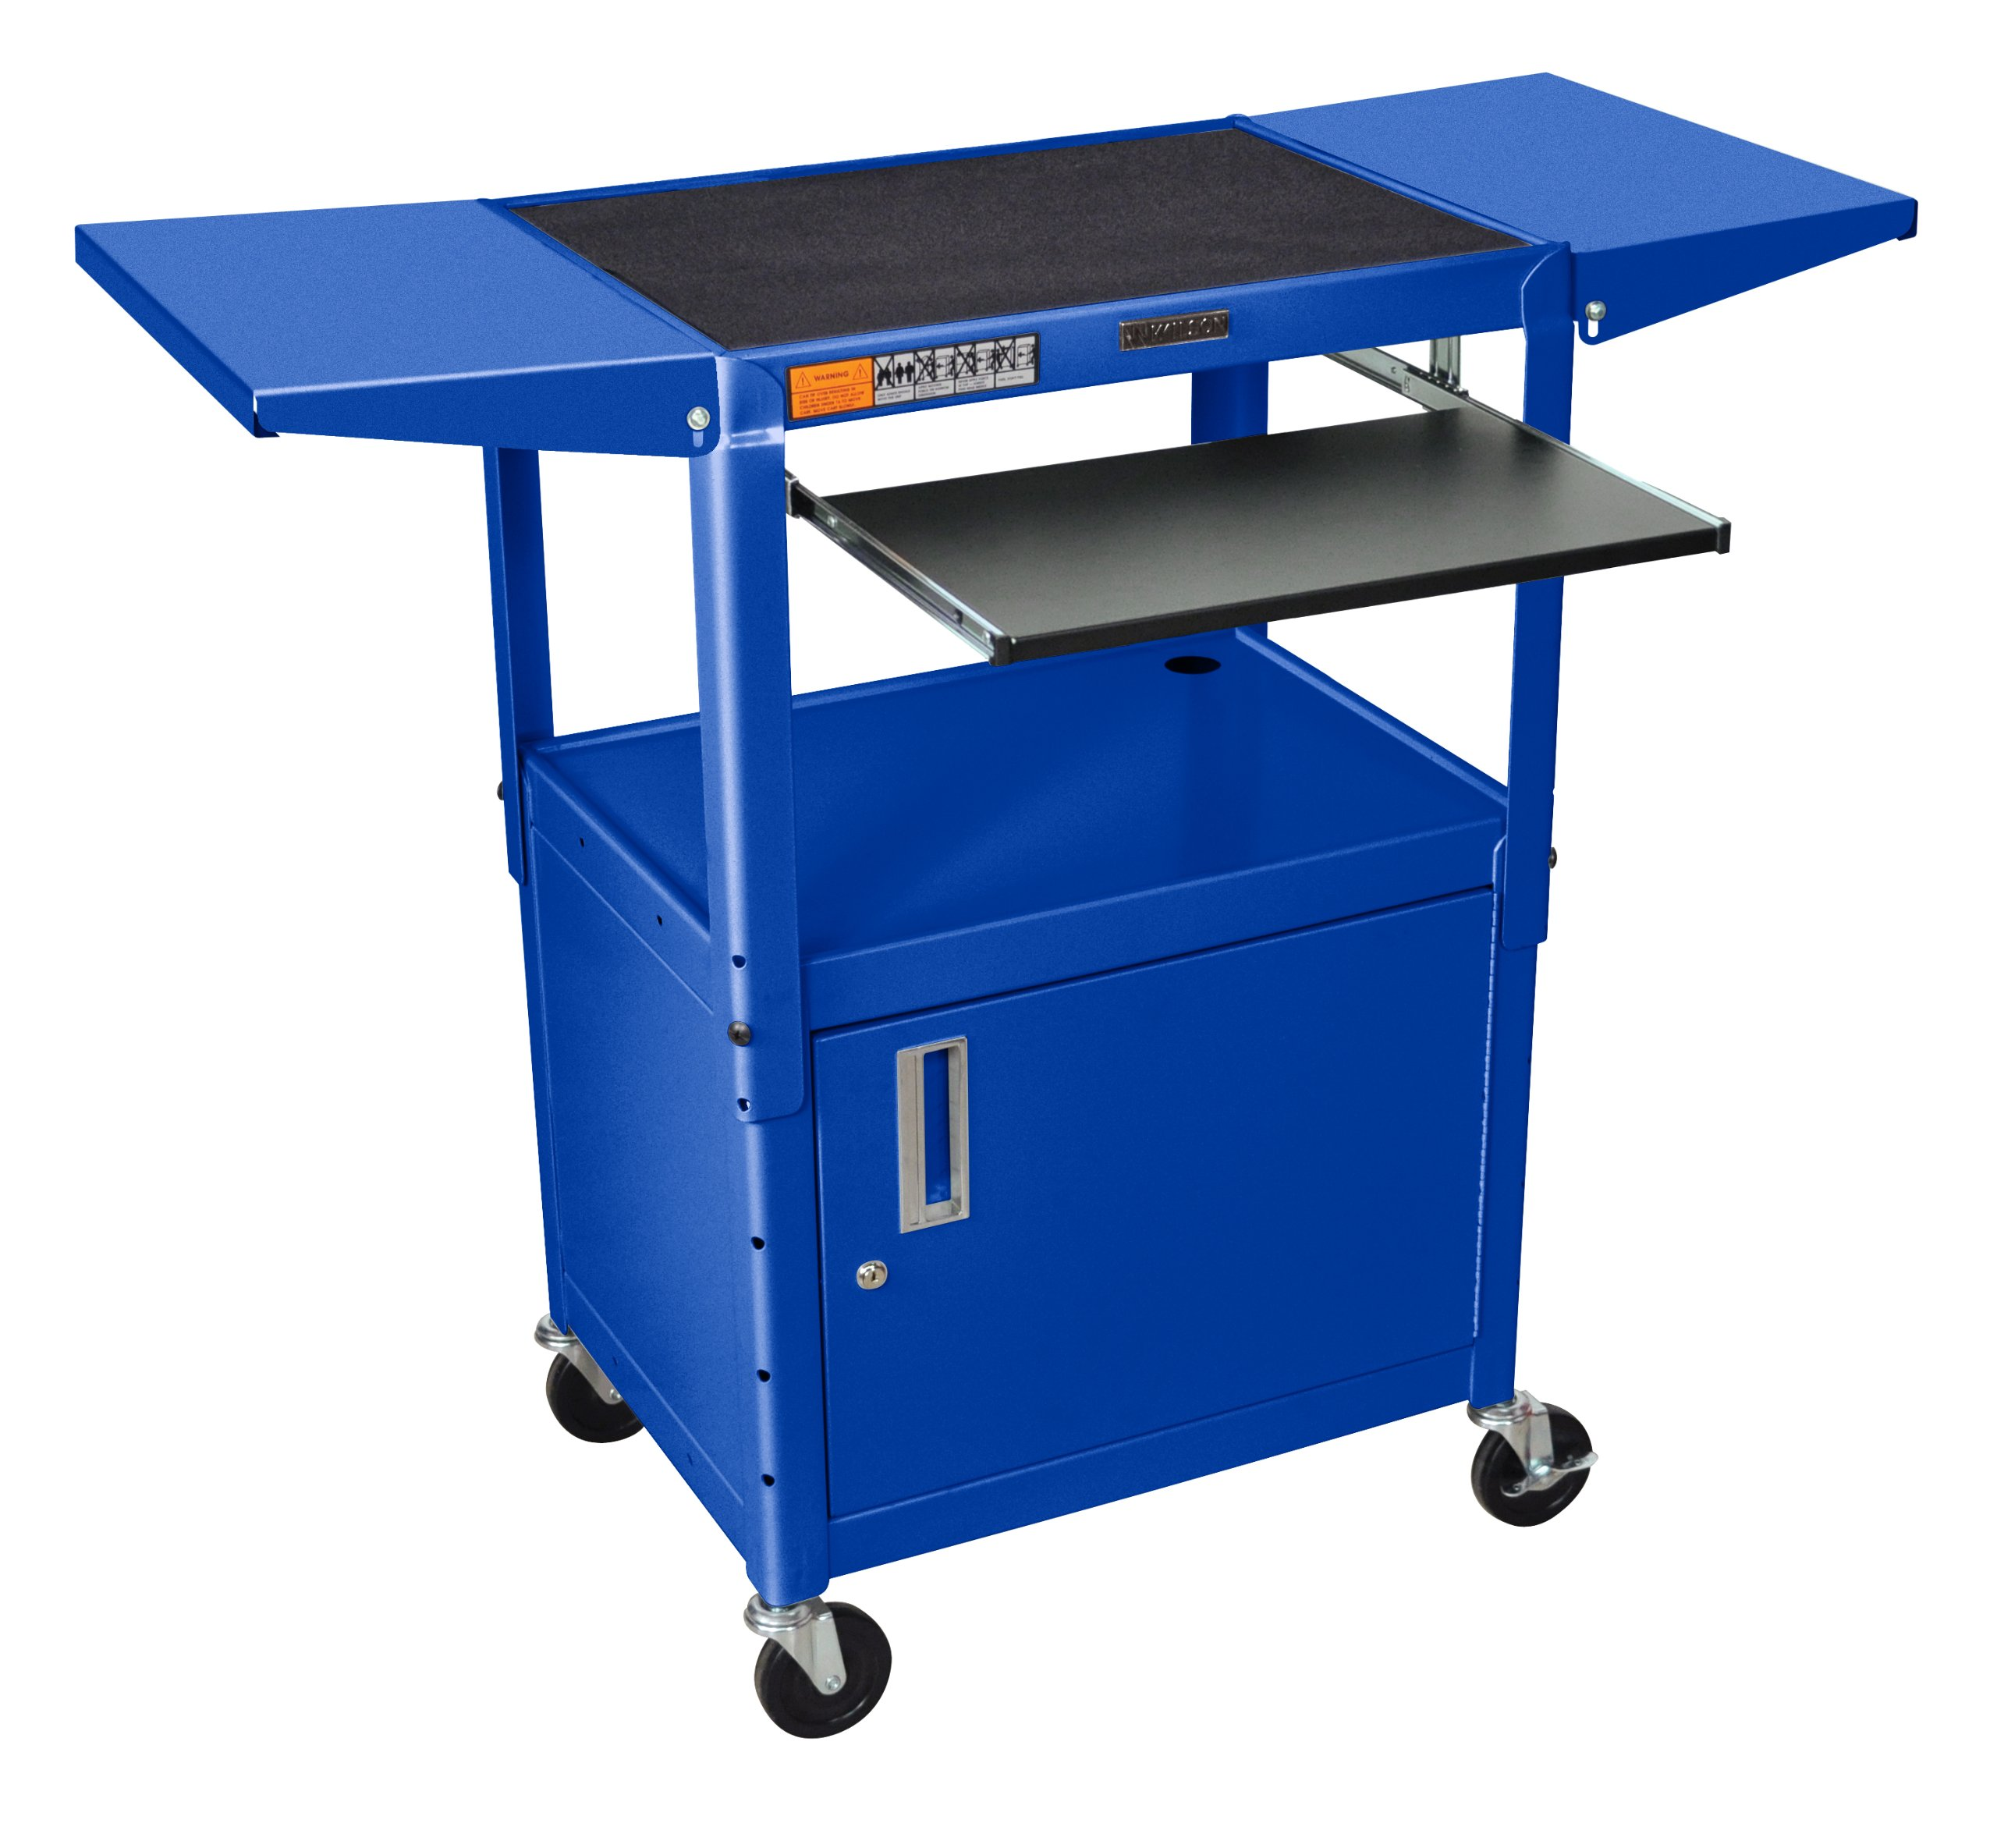 LUXOR AVJ42KBCDL-RB Metal A/V Cart with Pullout Keyboard Tray, Cabinet and 2 Drop Leaf Shelves, Adjustable Height, Blue